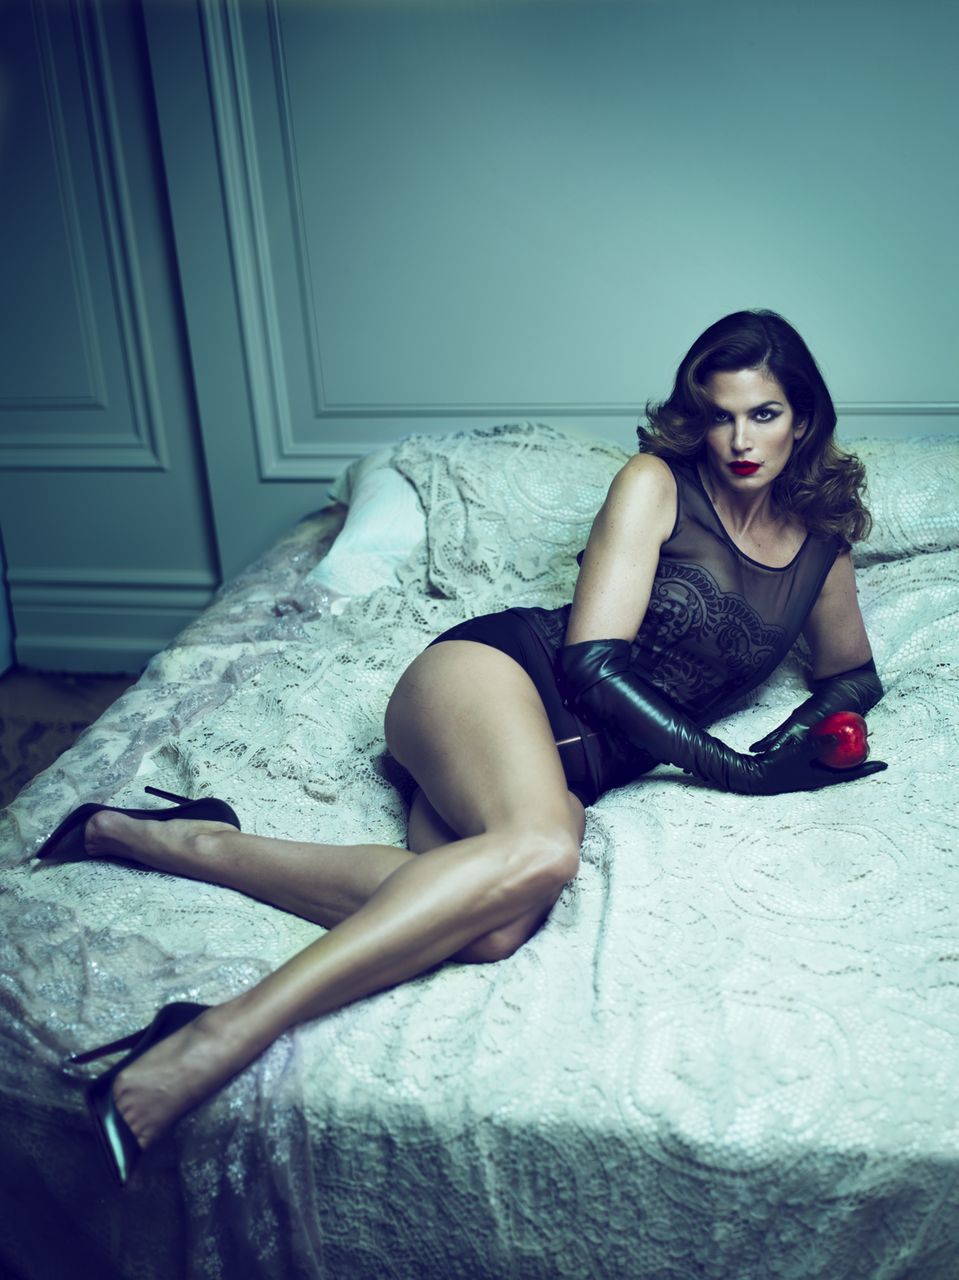 Cindy Crawford looks amazing for her age